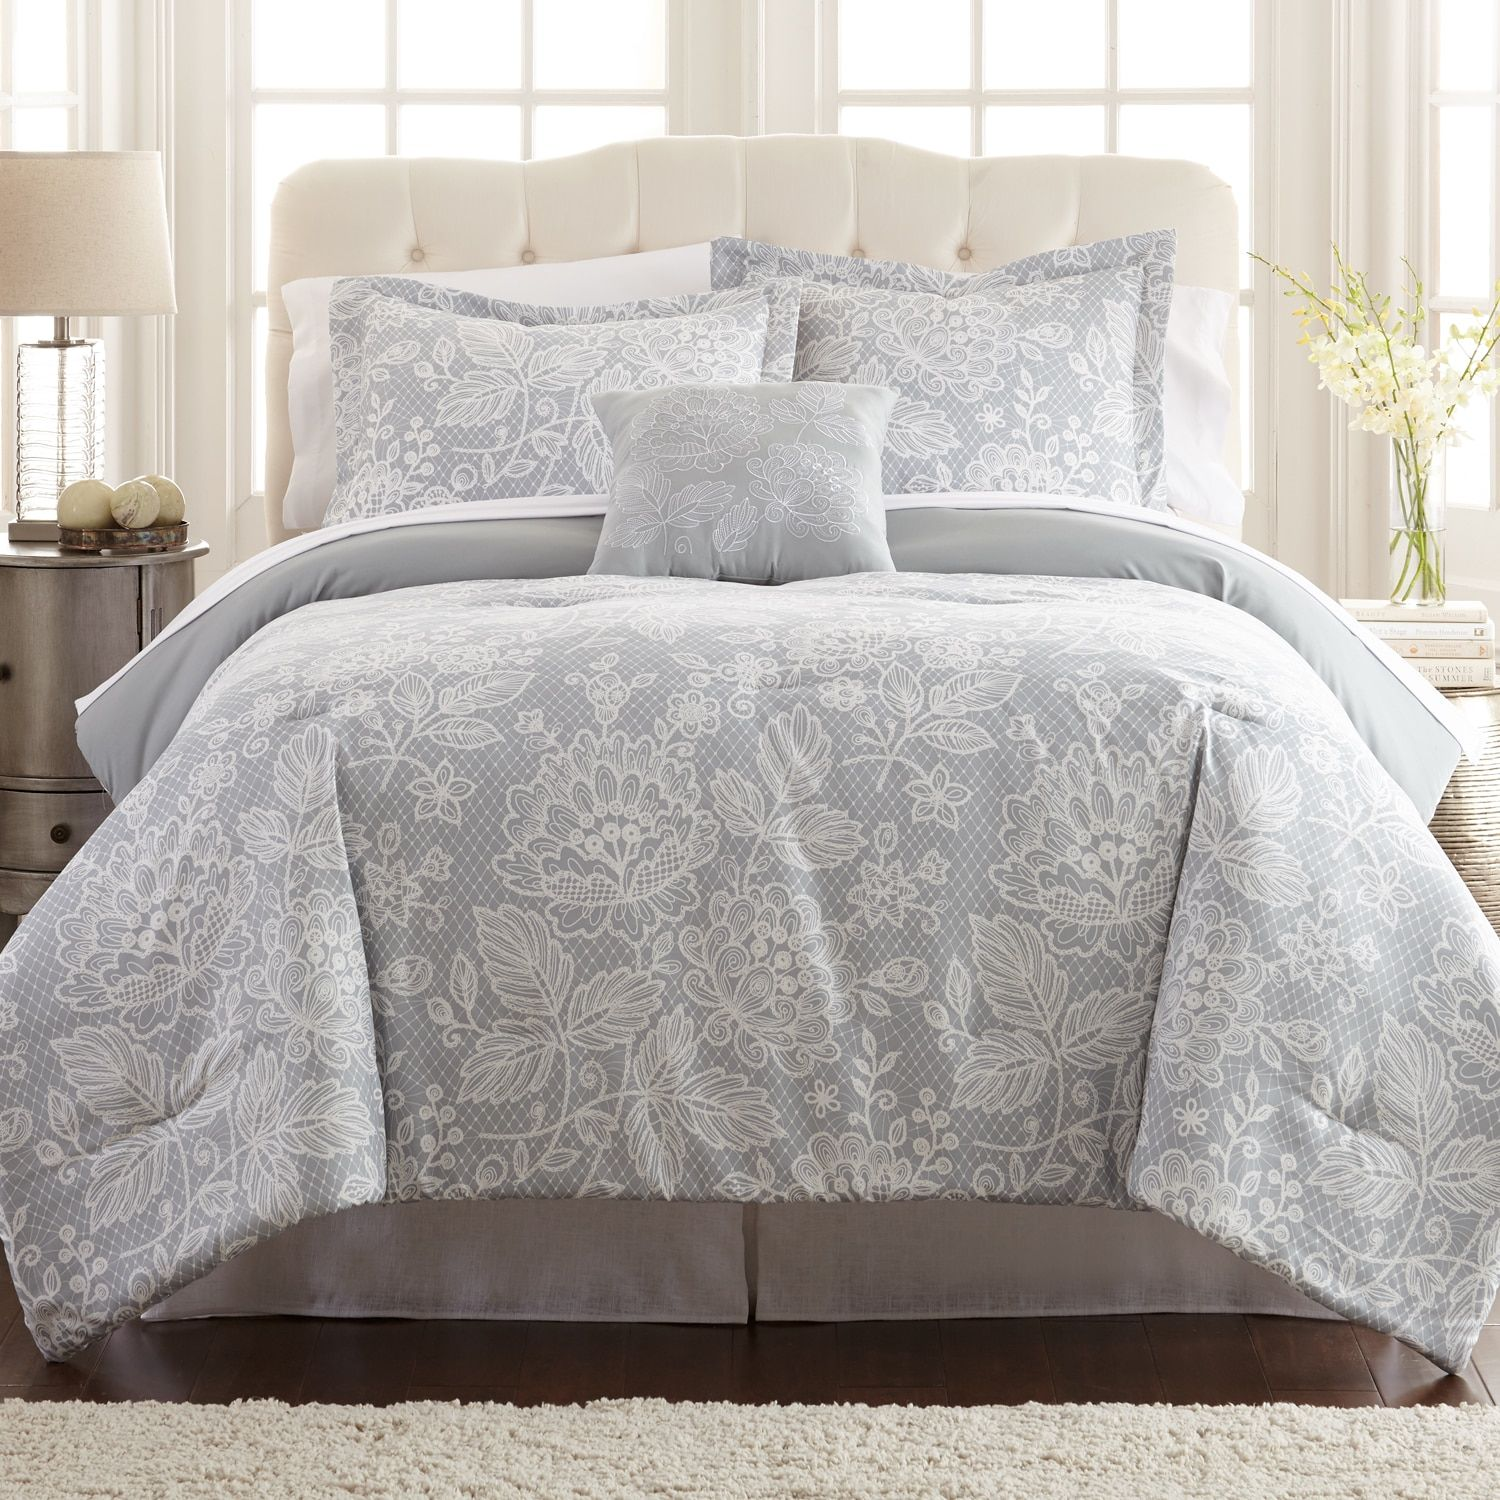 Olivia 8 piece Printed Reversible Bed in Bag Set